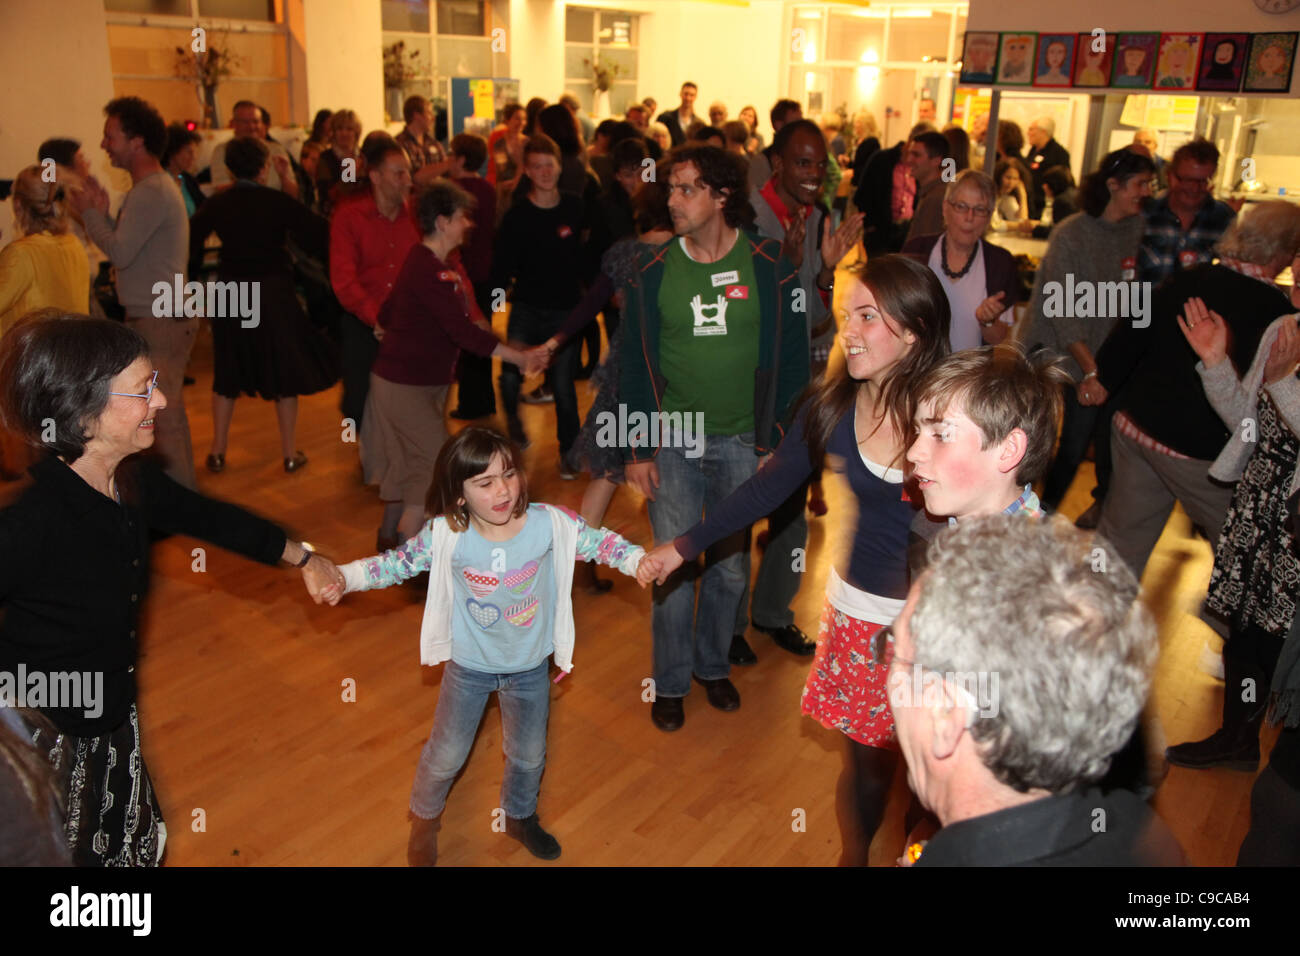 A community barn dance in a organised by a Transition Town (Kensal to Kilburn in London). - Stock Image